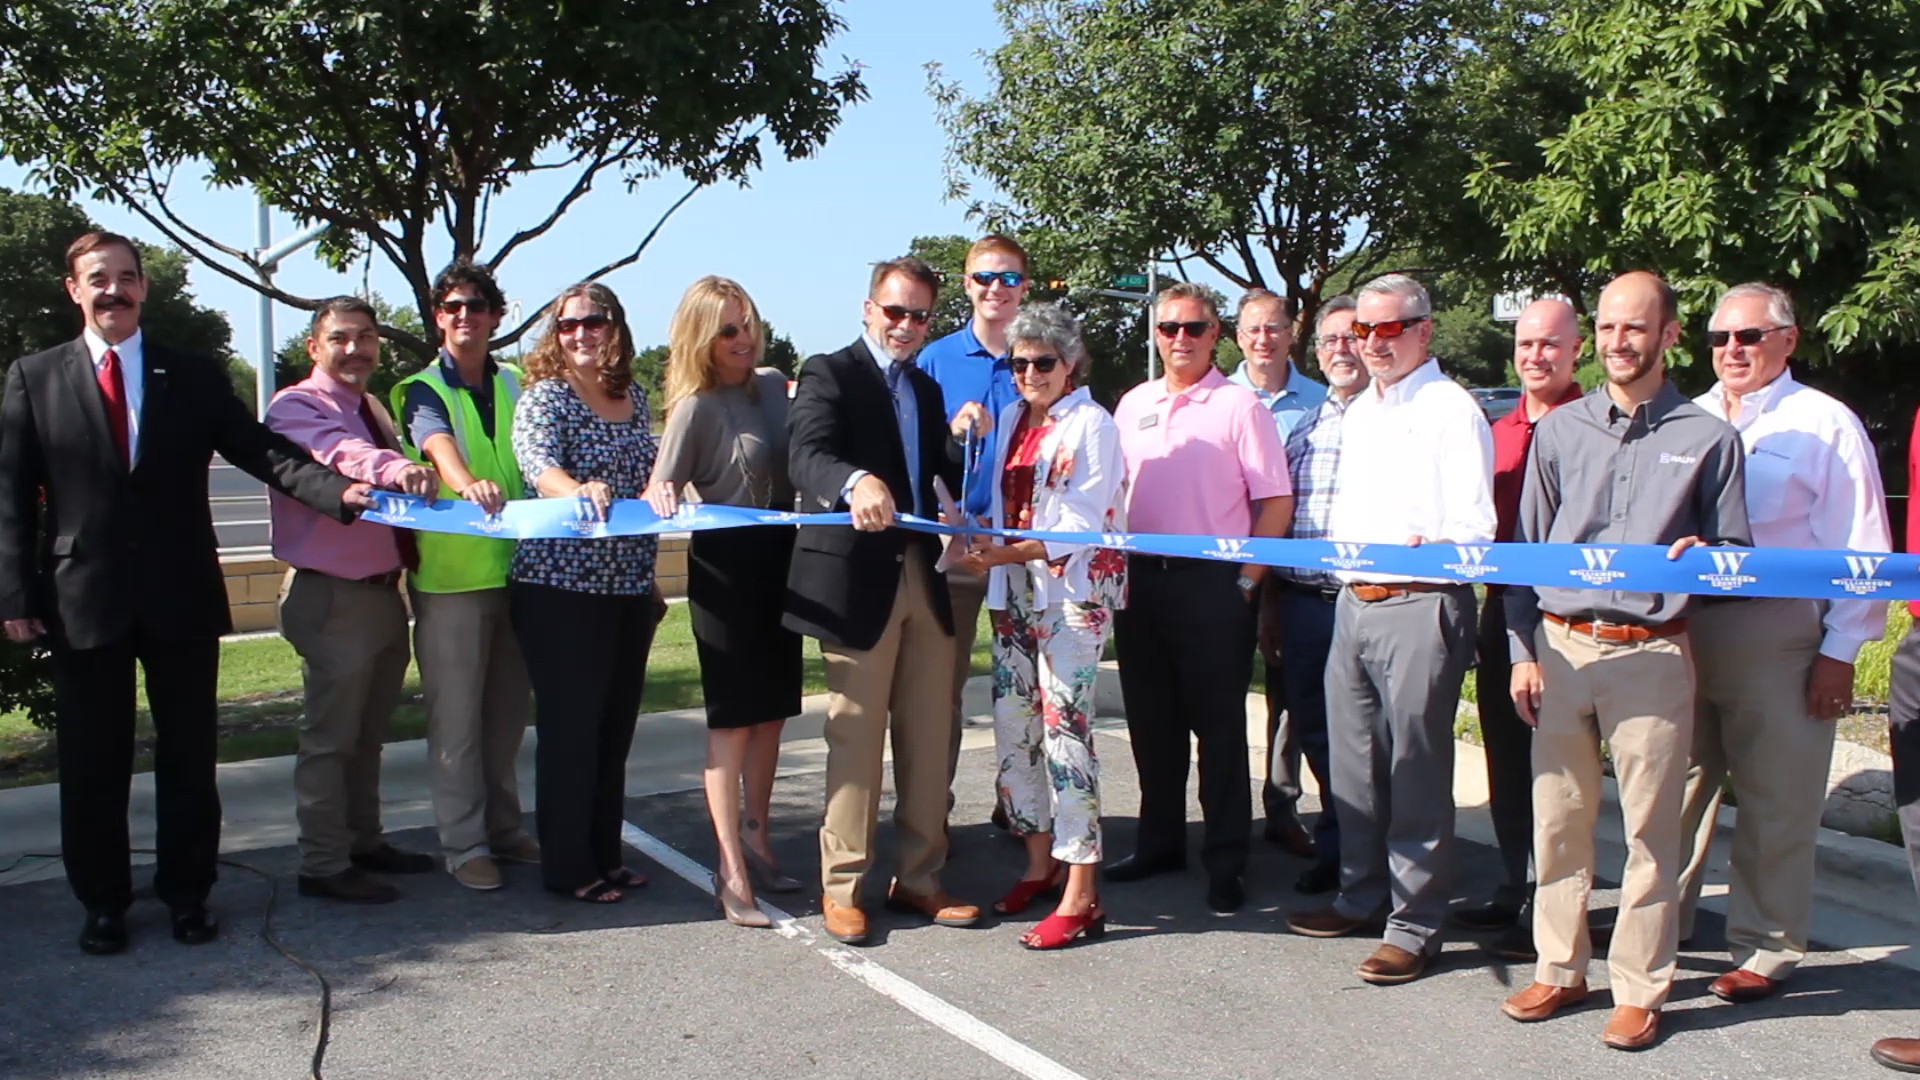 A group of attendees involved with the completion of RM 620 holds the ribbon as Commissioner Cook cuts it with large scissors amidst a backdrop of trees and the road behind them.